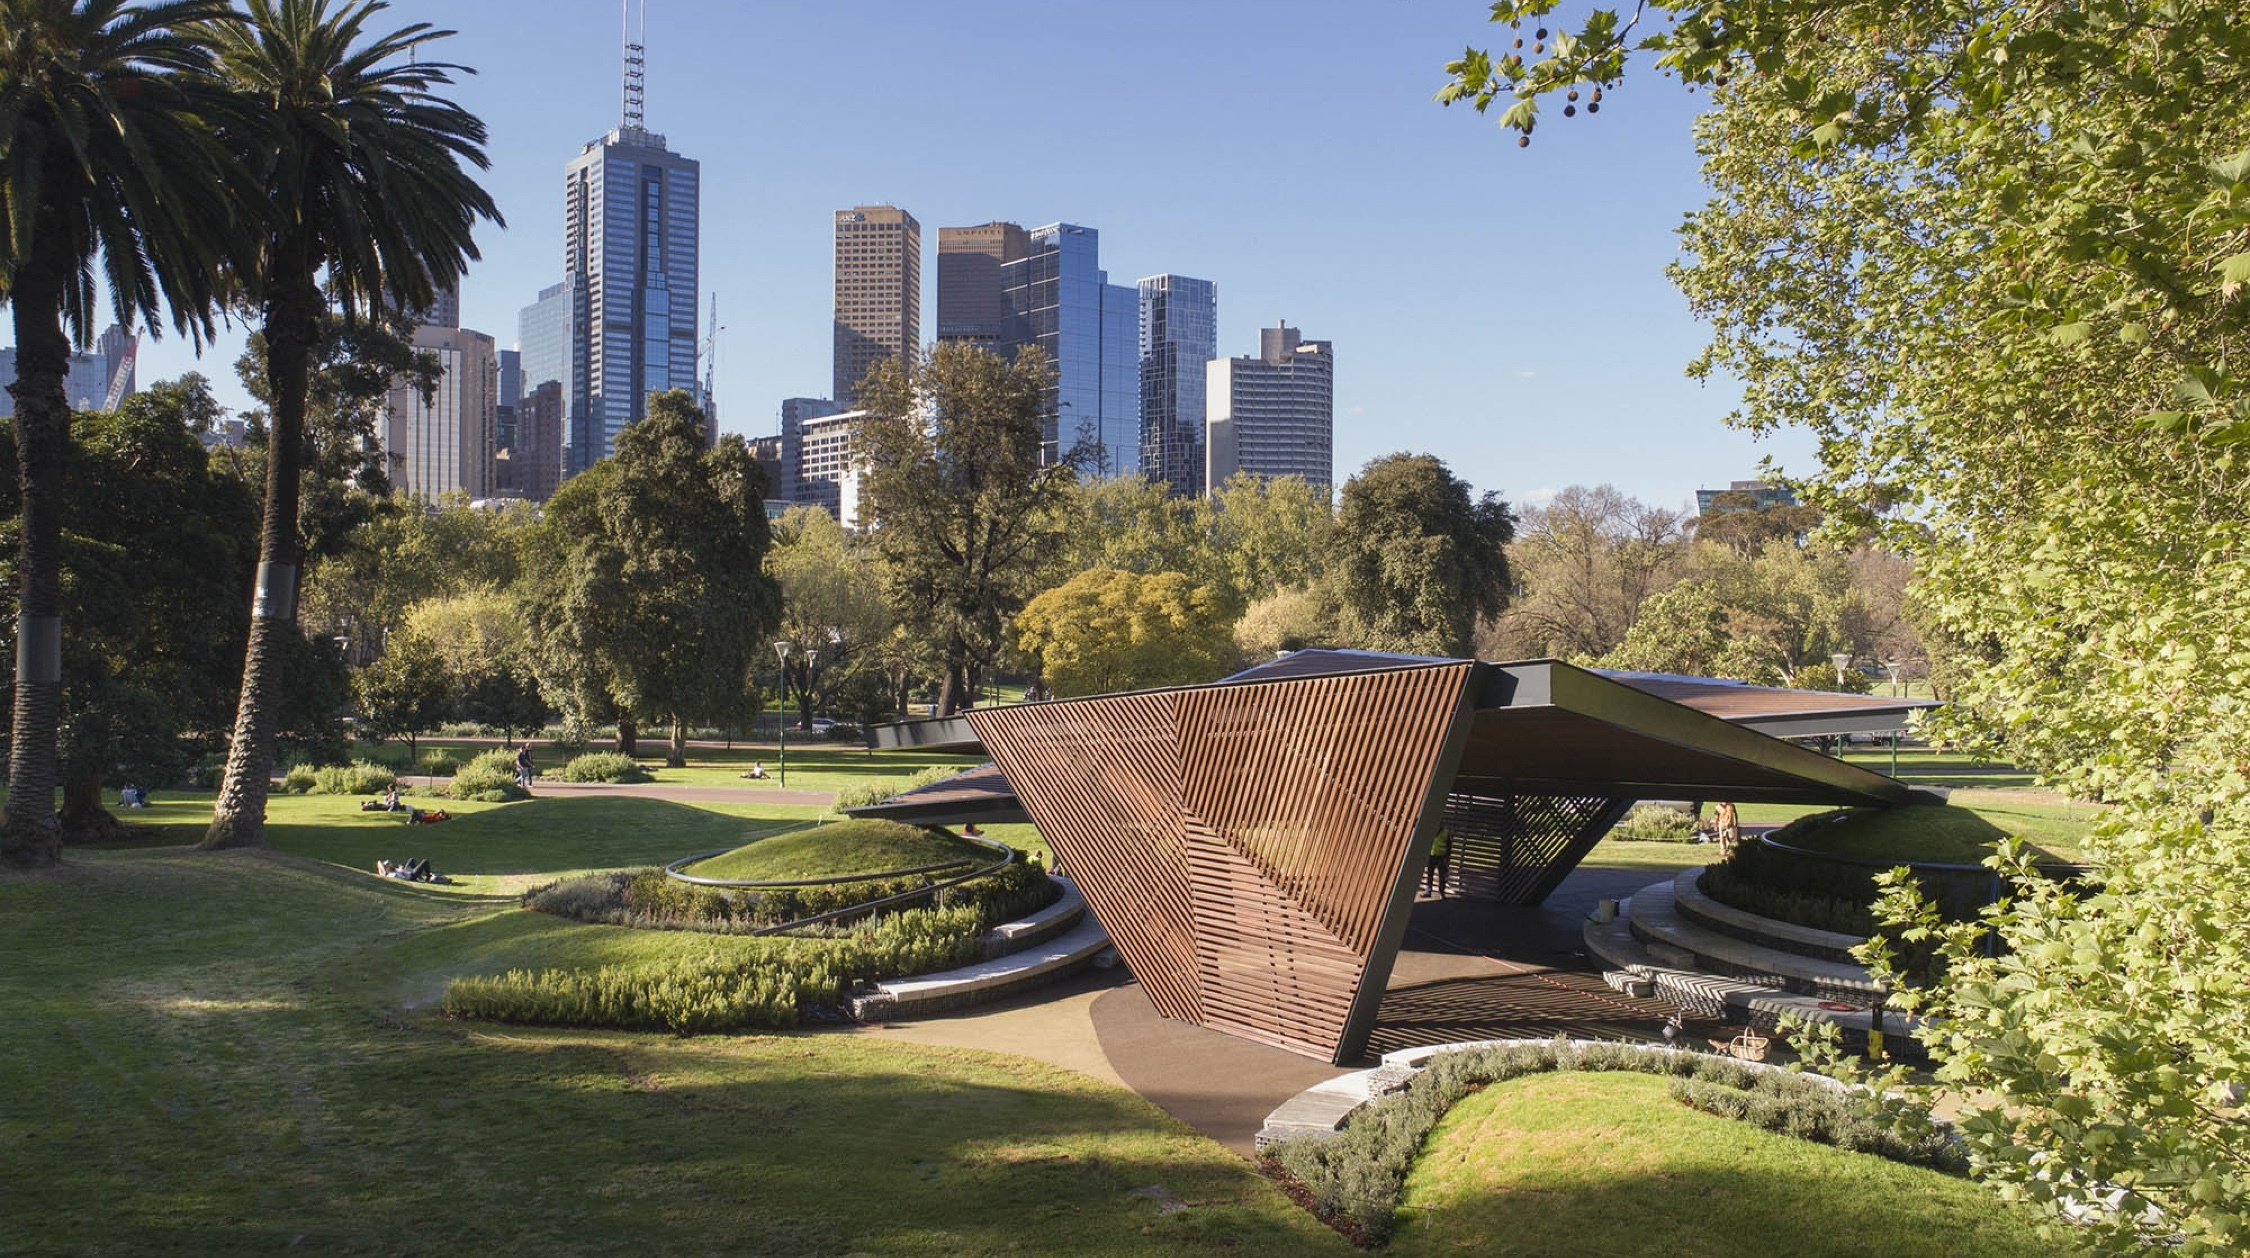 MPavilion opens with a program of 400 free events